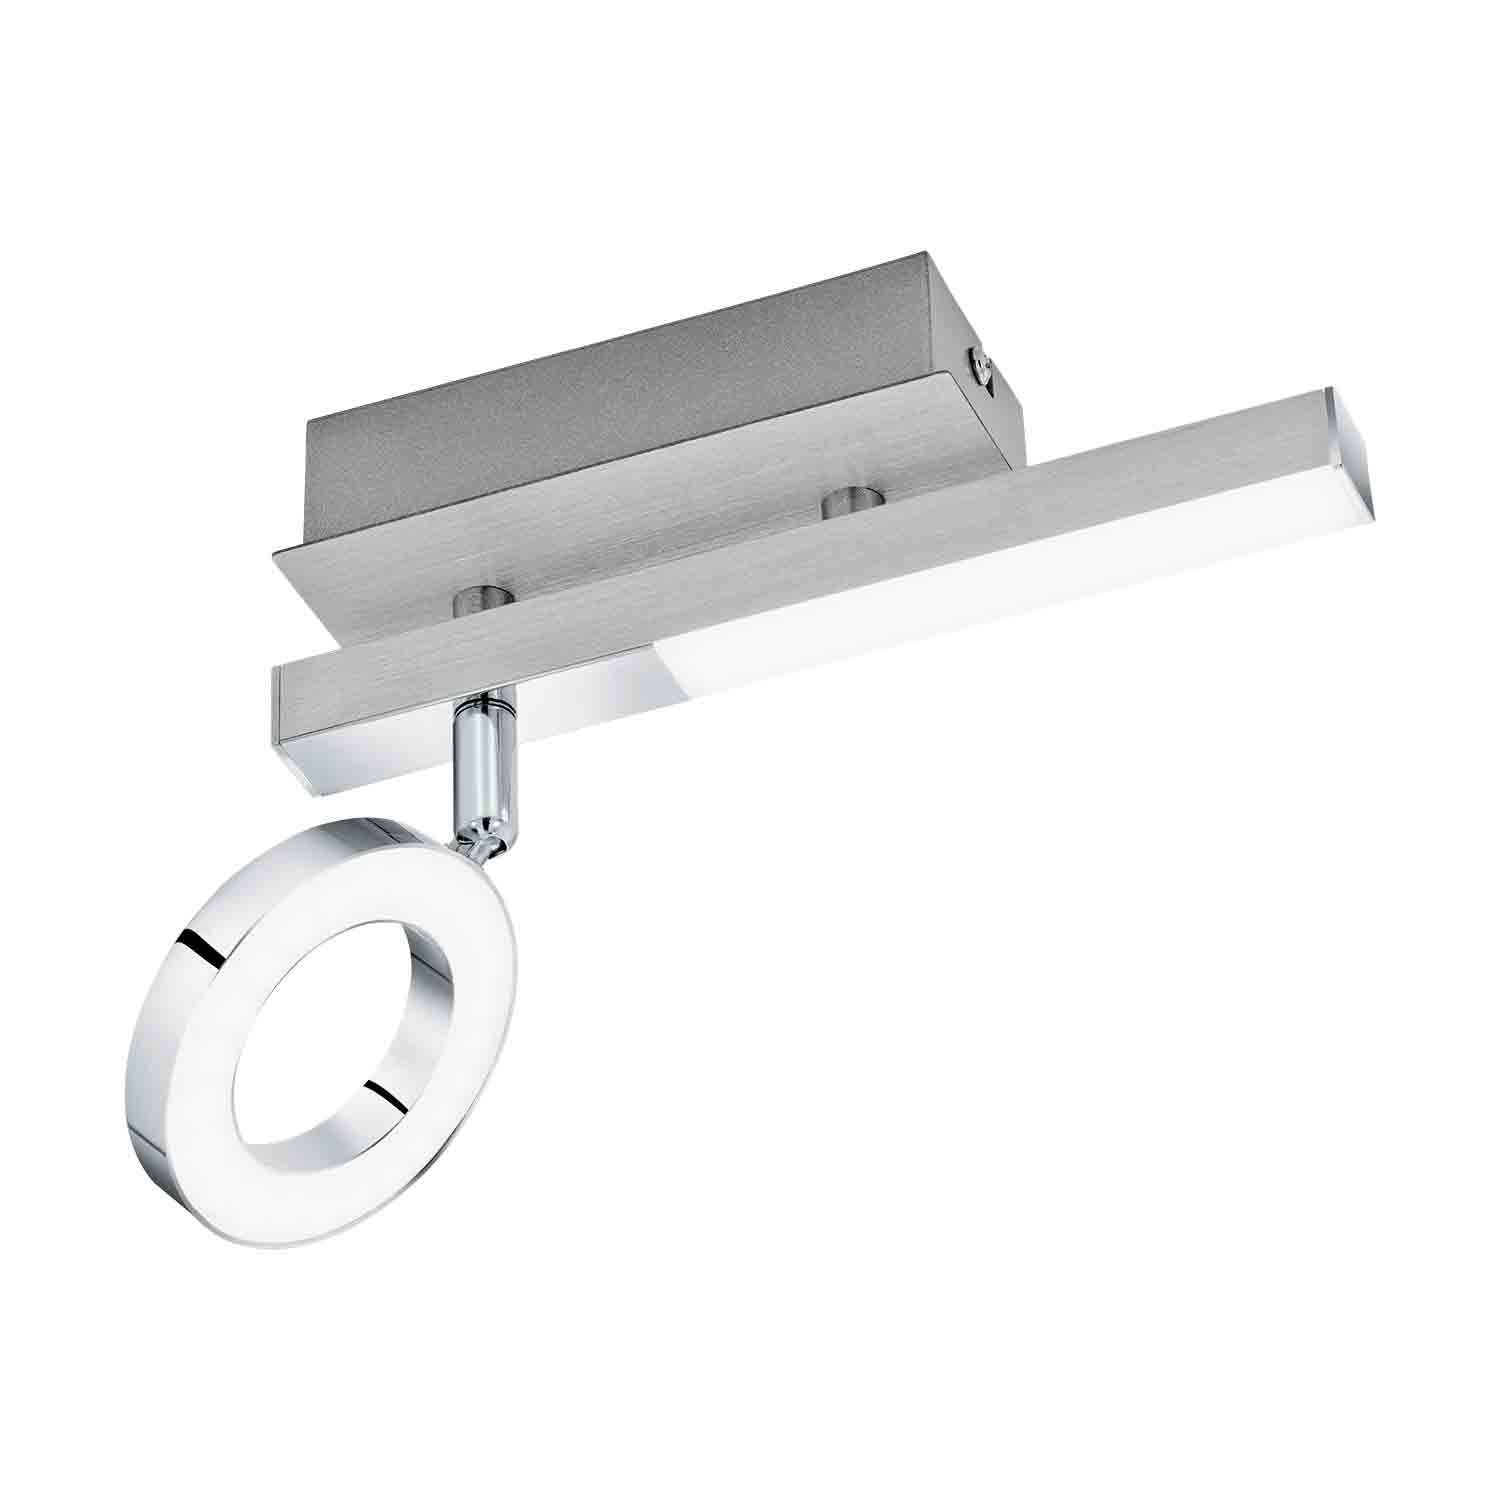 Cardillio Wall Light Aluminium Chrome 1 Light